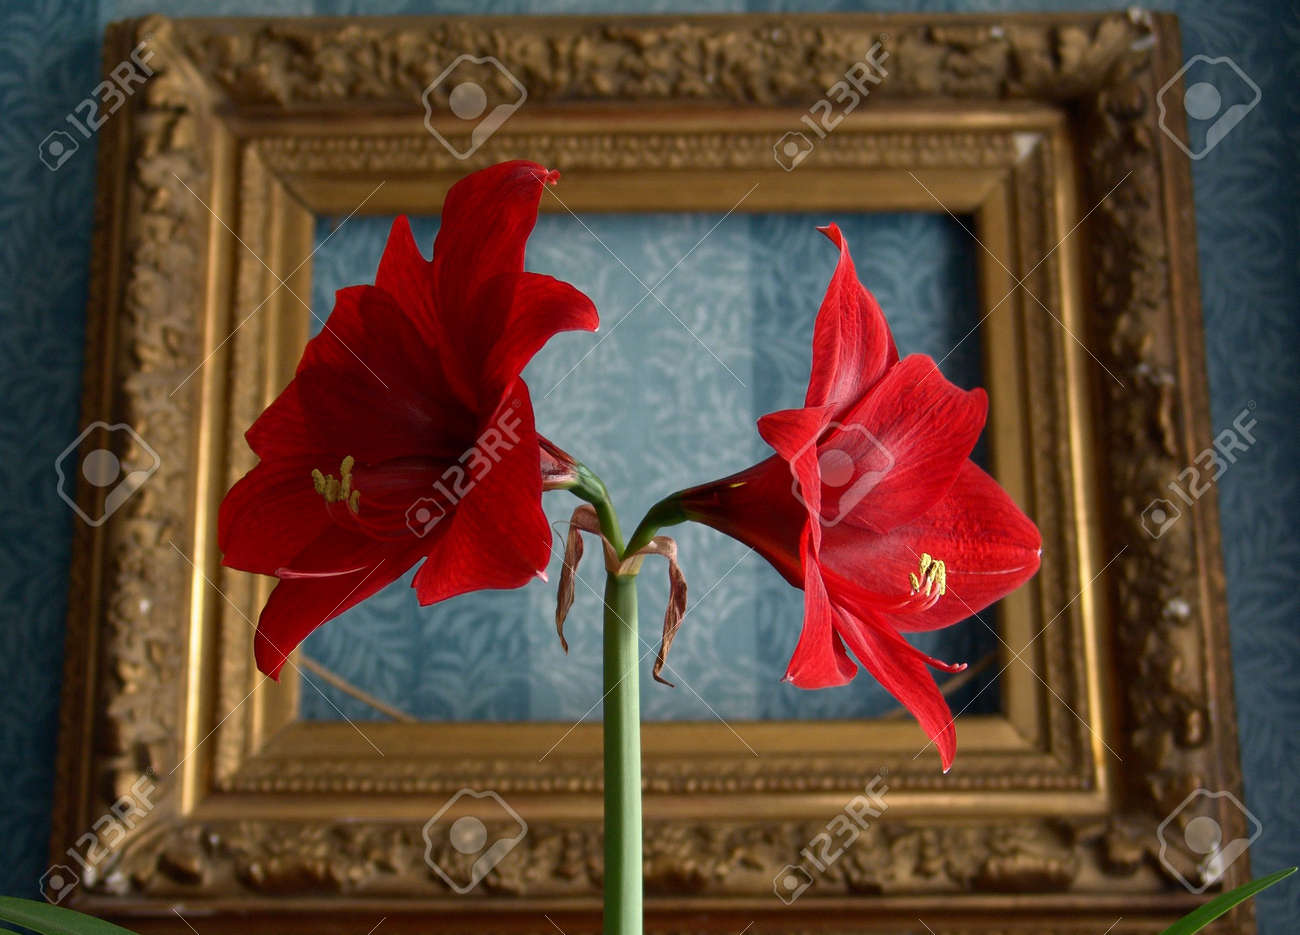 Red flower on a background of an old frame Stock Photo - 2980992